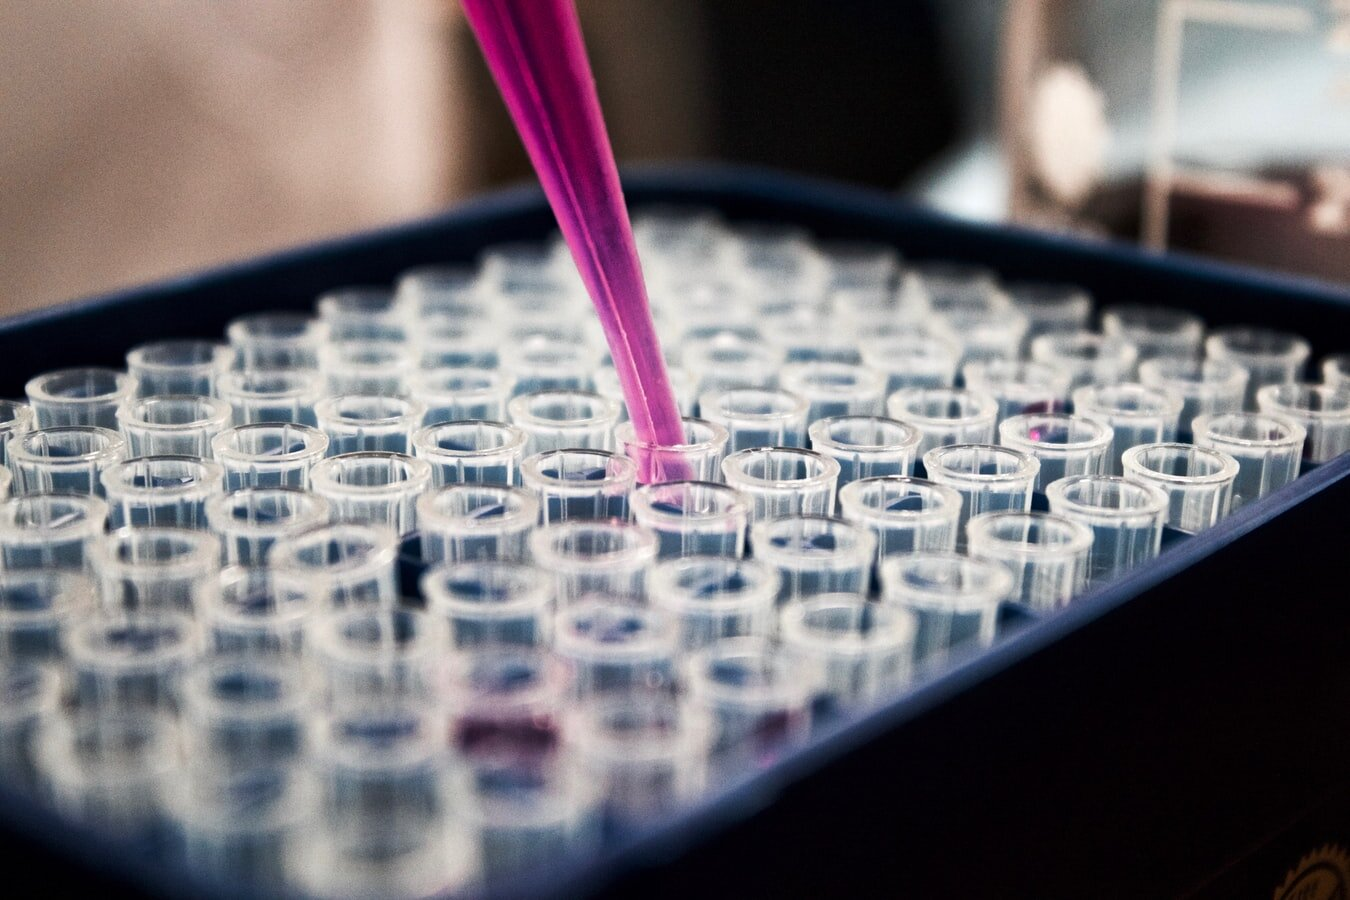 WEt lab experiences - These can take the form of Chemical, Biological, Animal, or Clinical research.